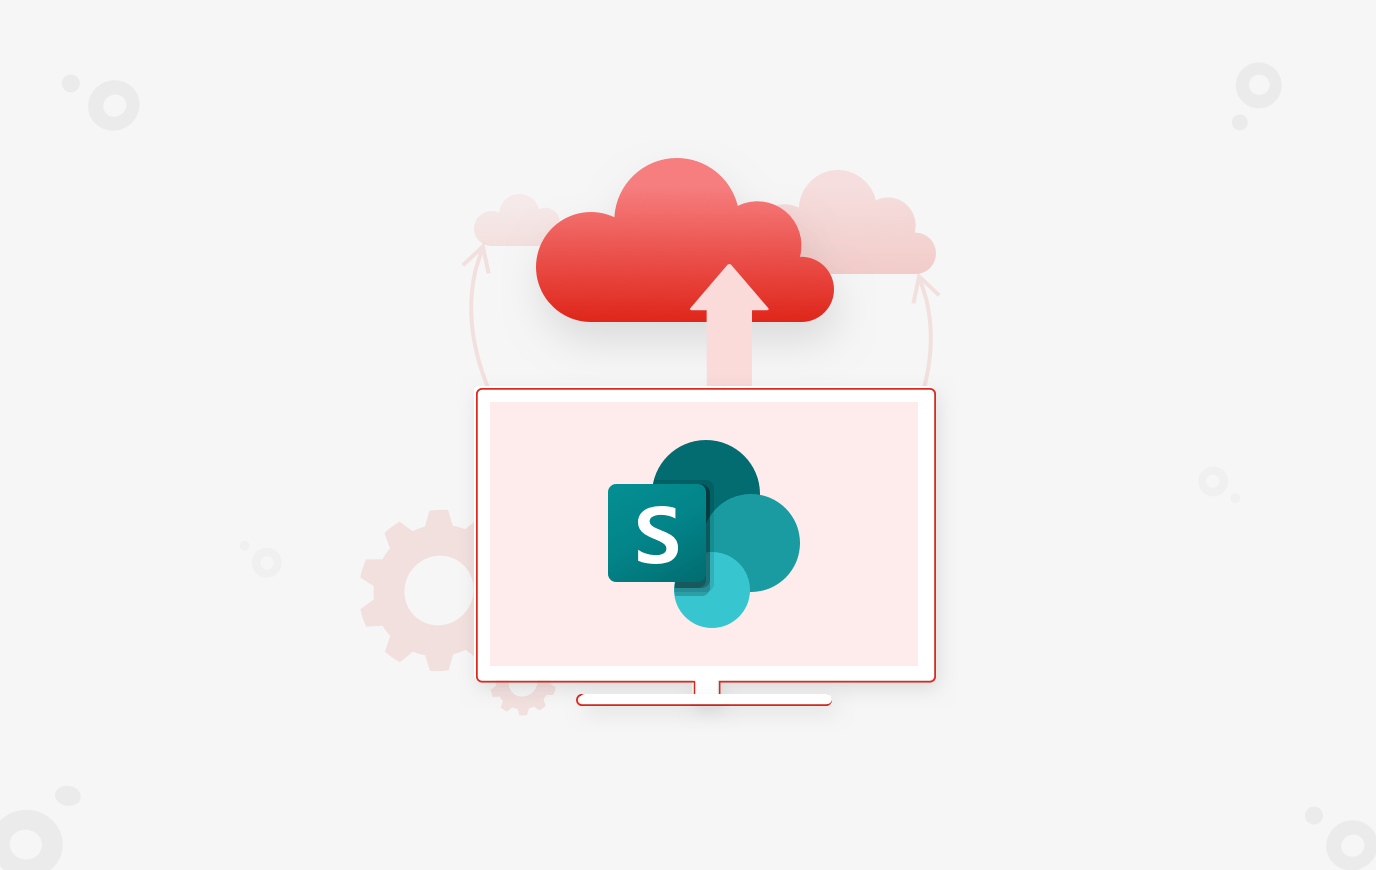 Migrating SharePoint to Cloud or Latest On-Premise Version (Part I – Business Need)